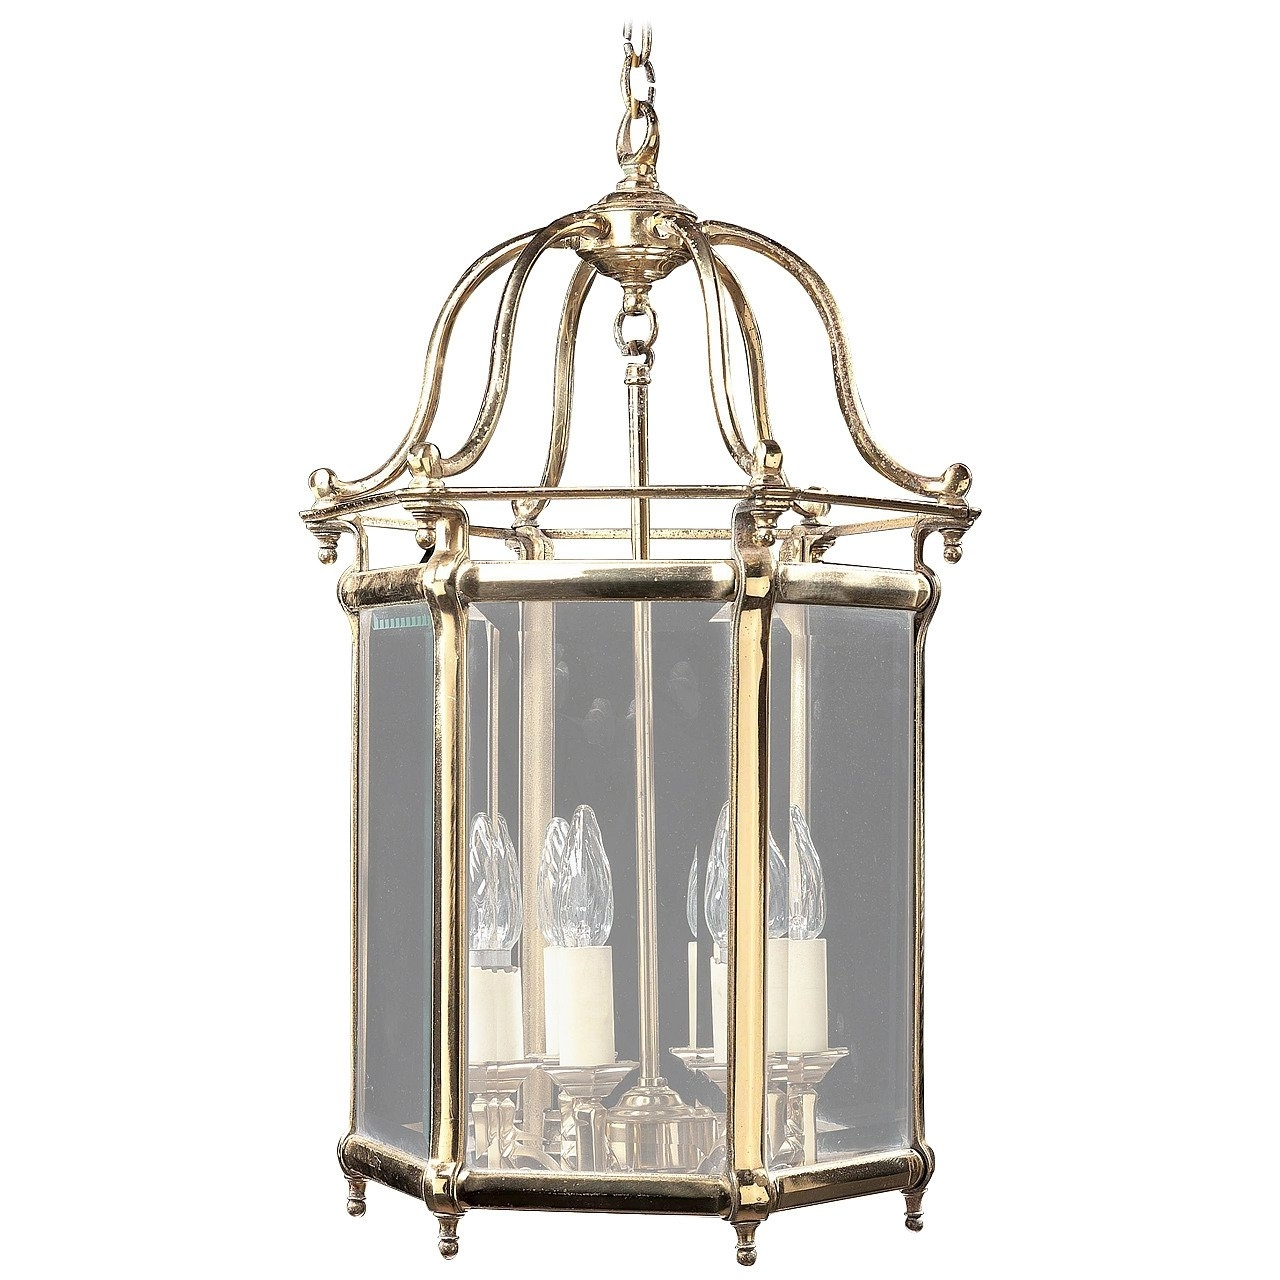 Jumbo Outdoor Lanterns For Recent Brass Outdoor Lantern Porch Light Exterior Applique Sconce, 20th (View 19 of 20)